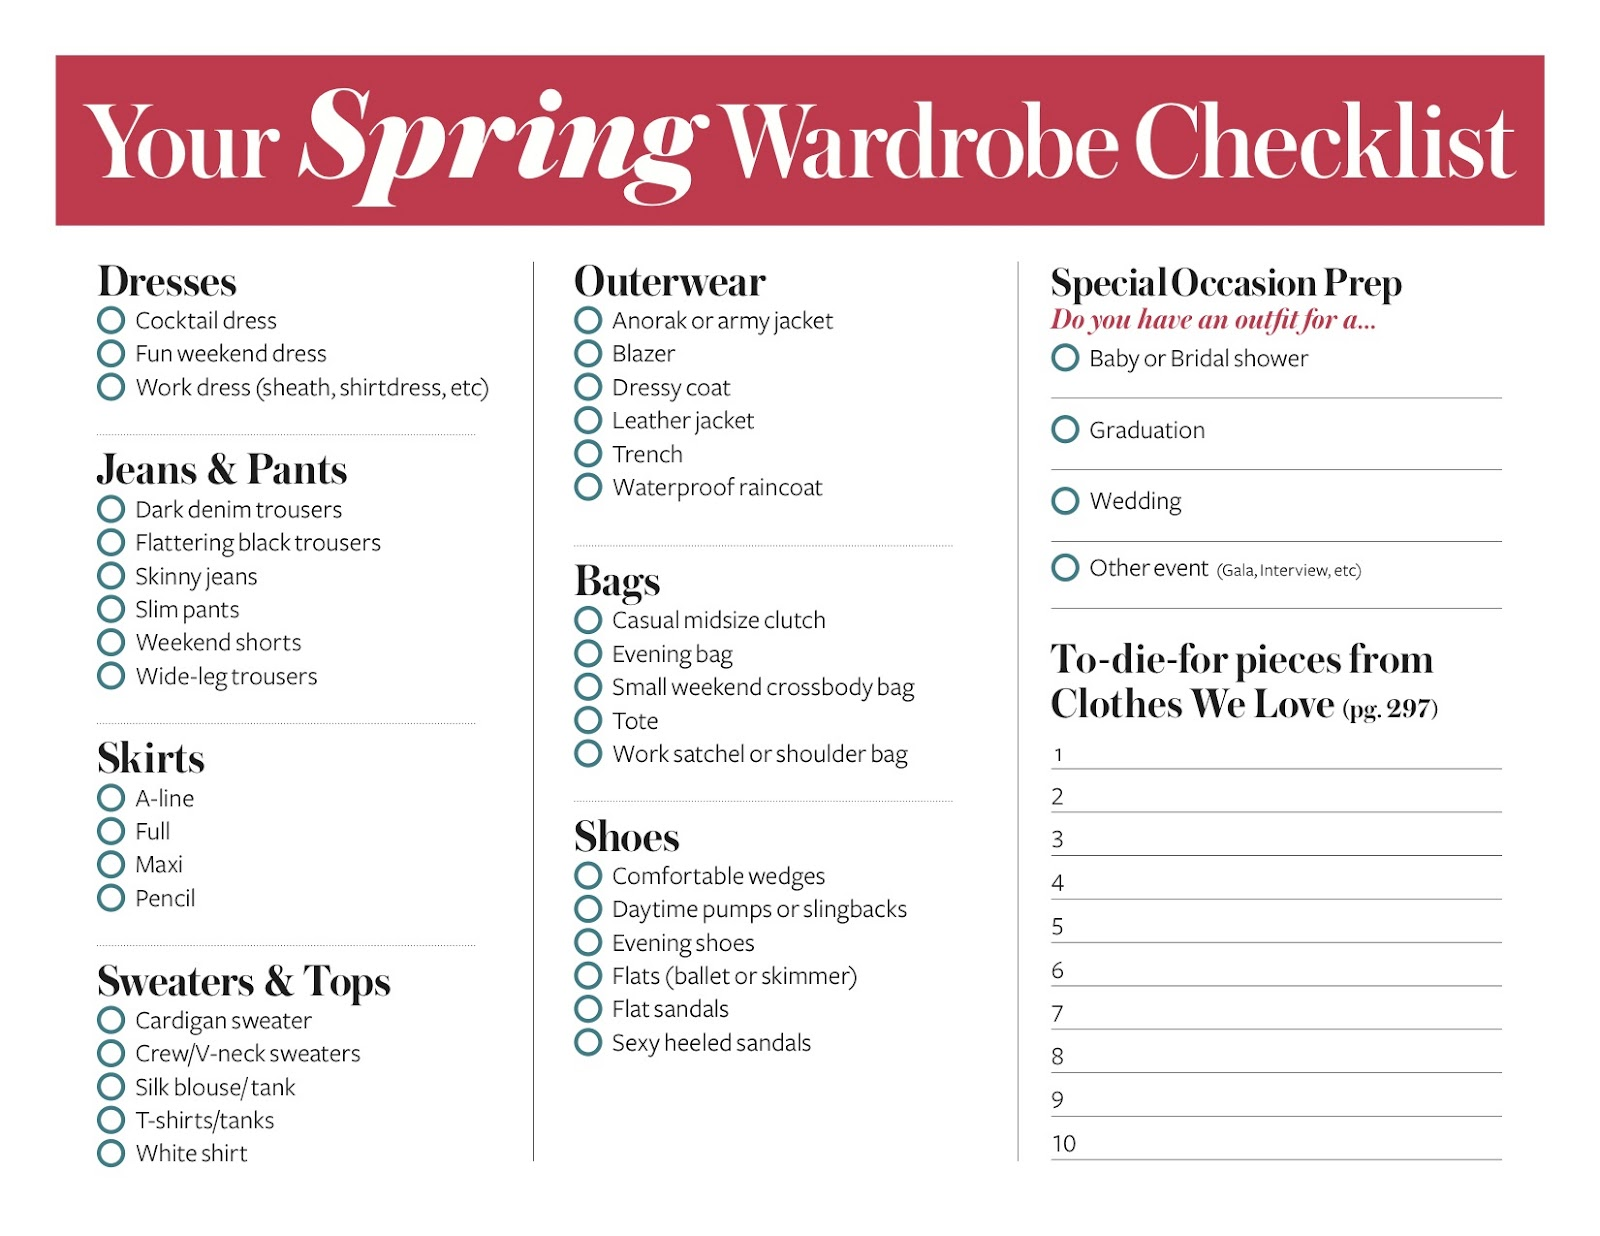 Bored doe wardrobe checklist when i saw this ultimate spring cleaning wardrobe checklist from instyle i knew it would help me clarify my closet this spring time to get rid of the old pronofoot35fo Image collections